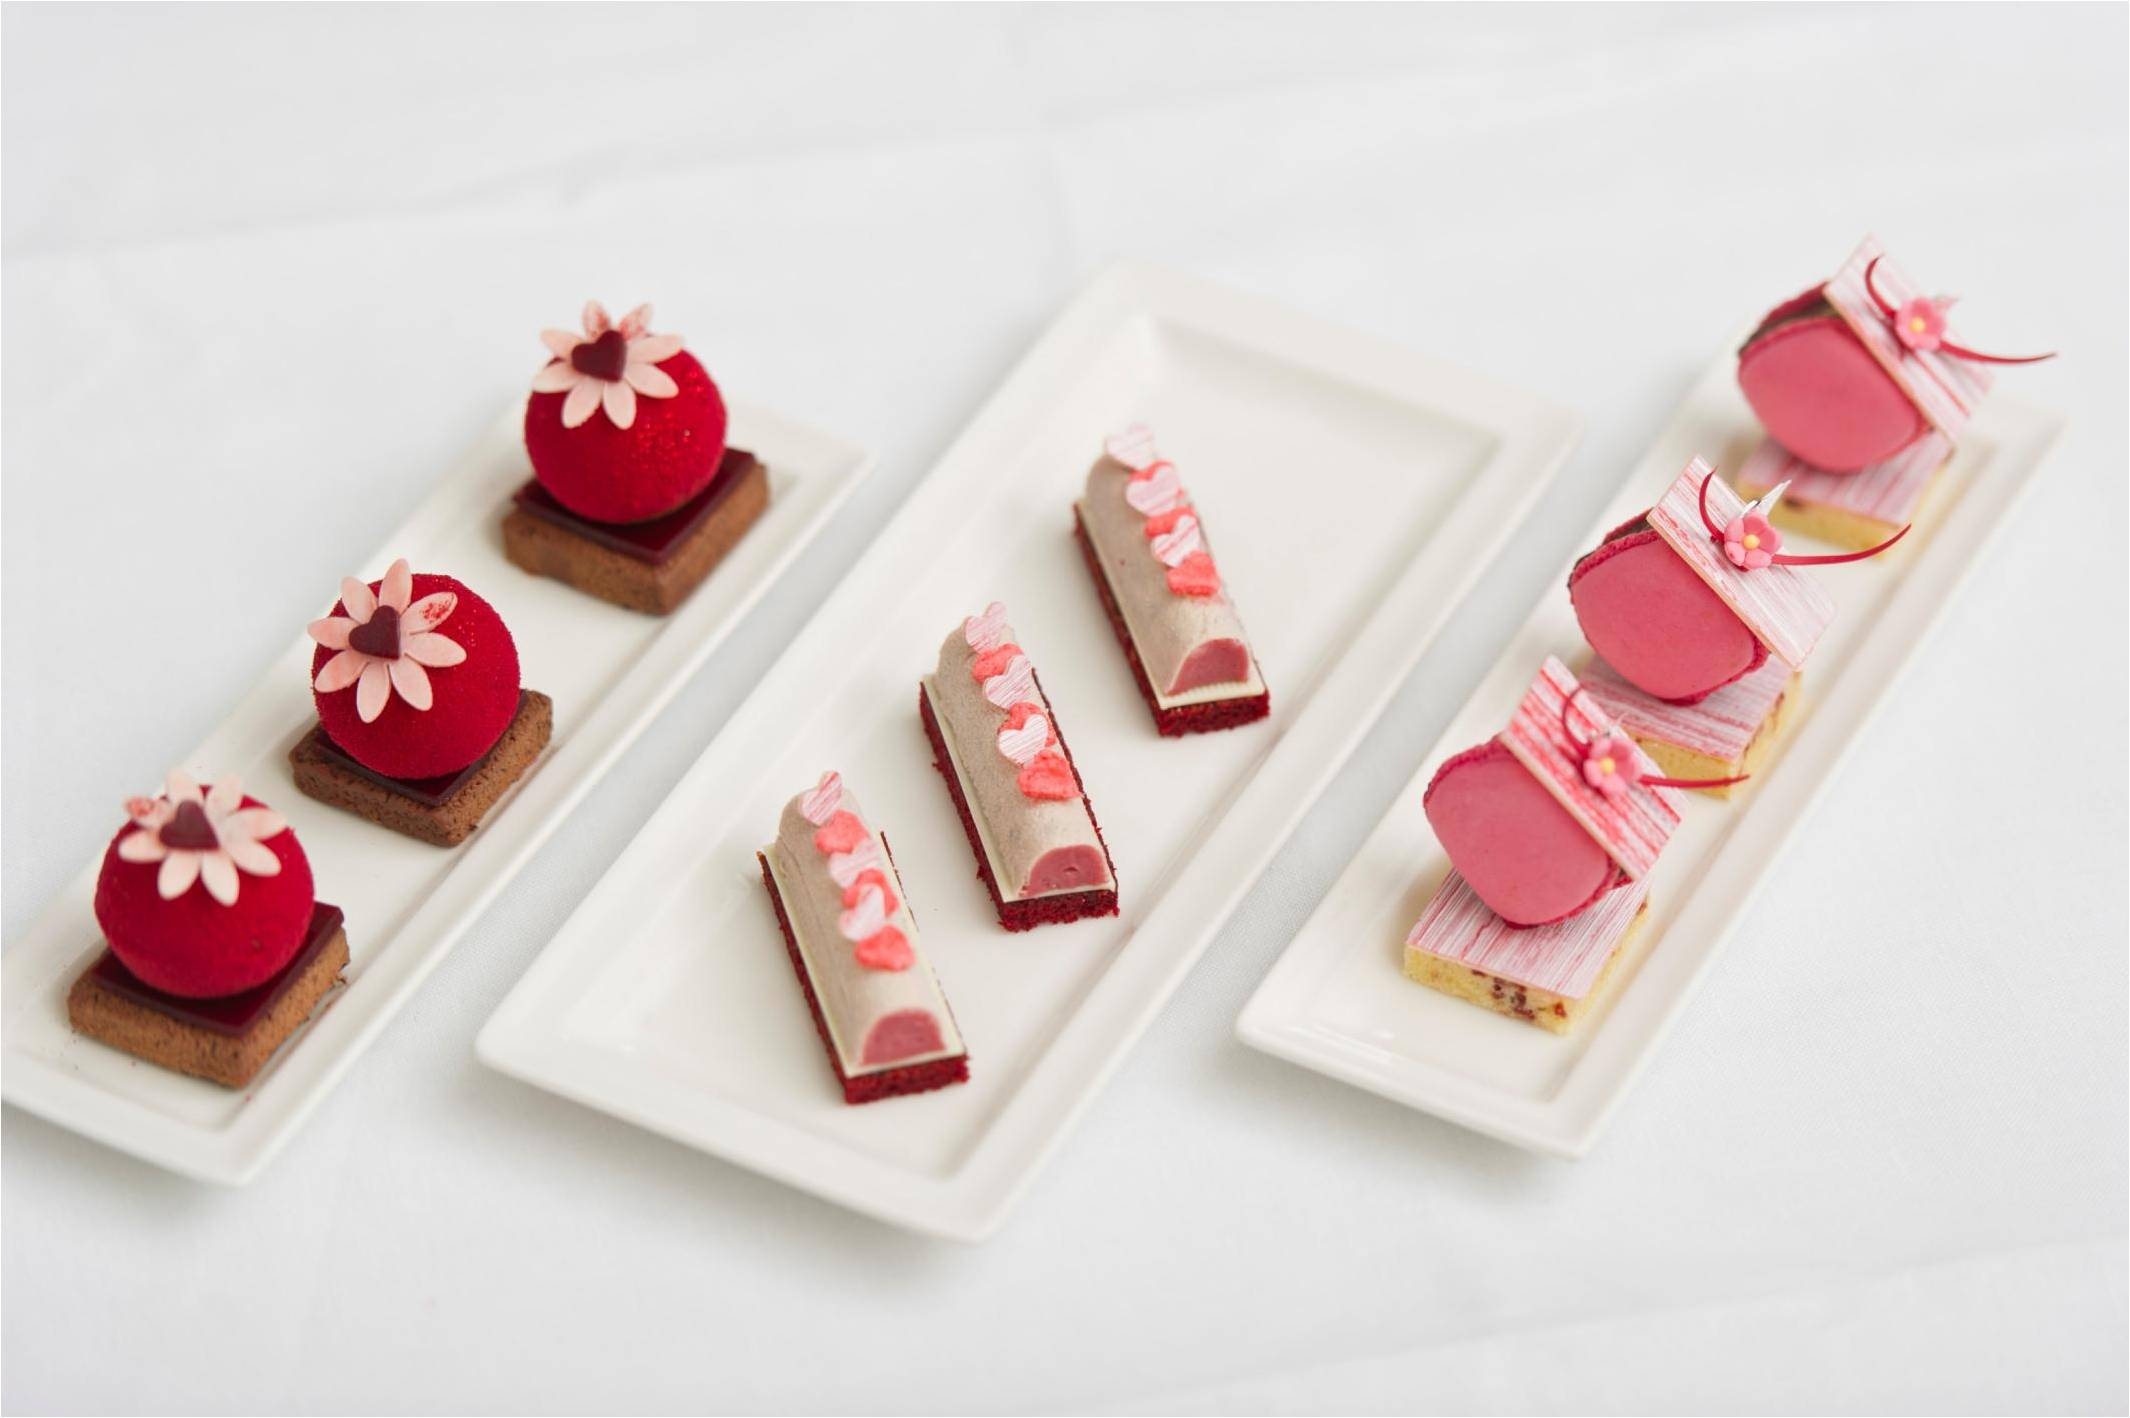 Sensory Afternoon Tea At The Corinthia Hotel Beauty And